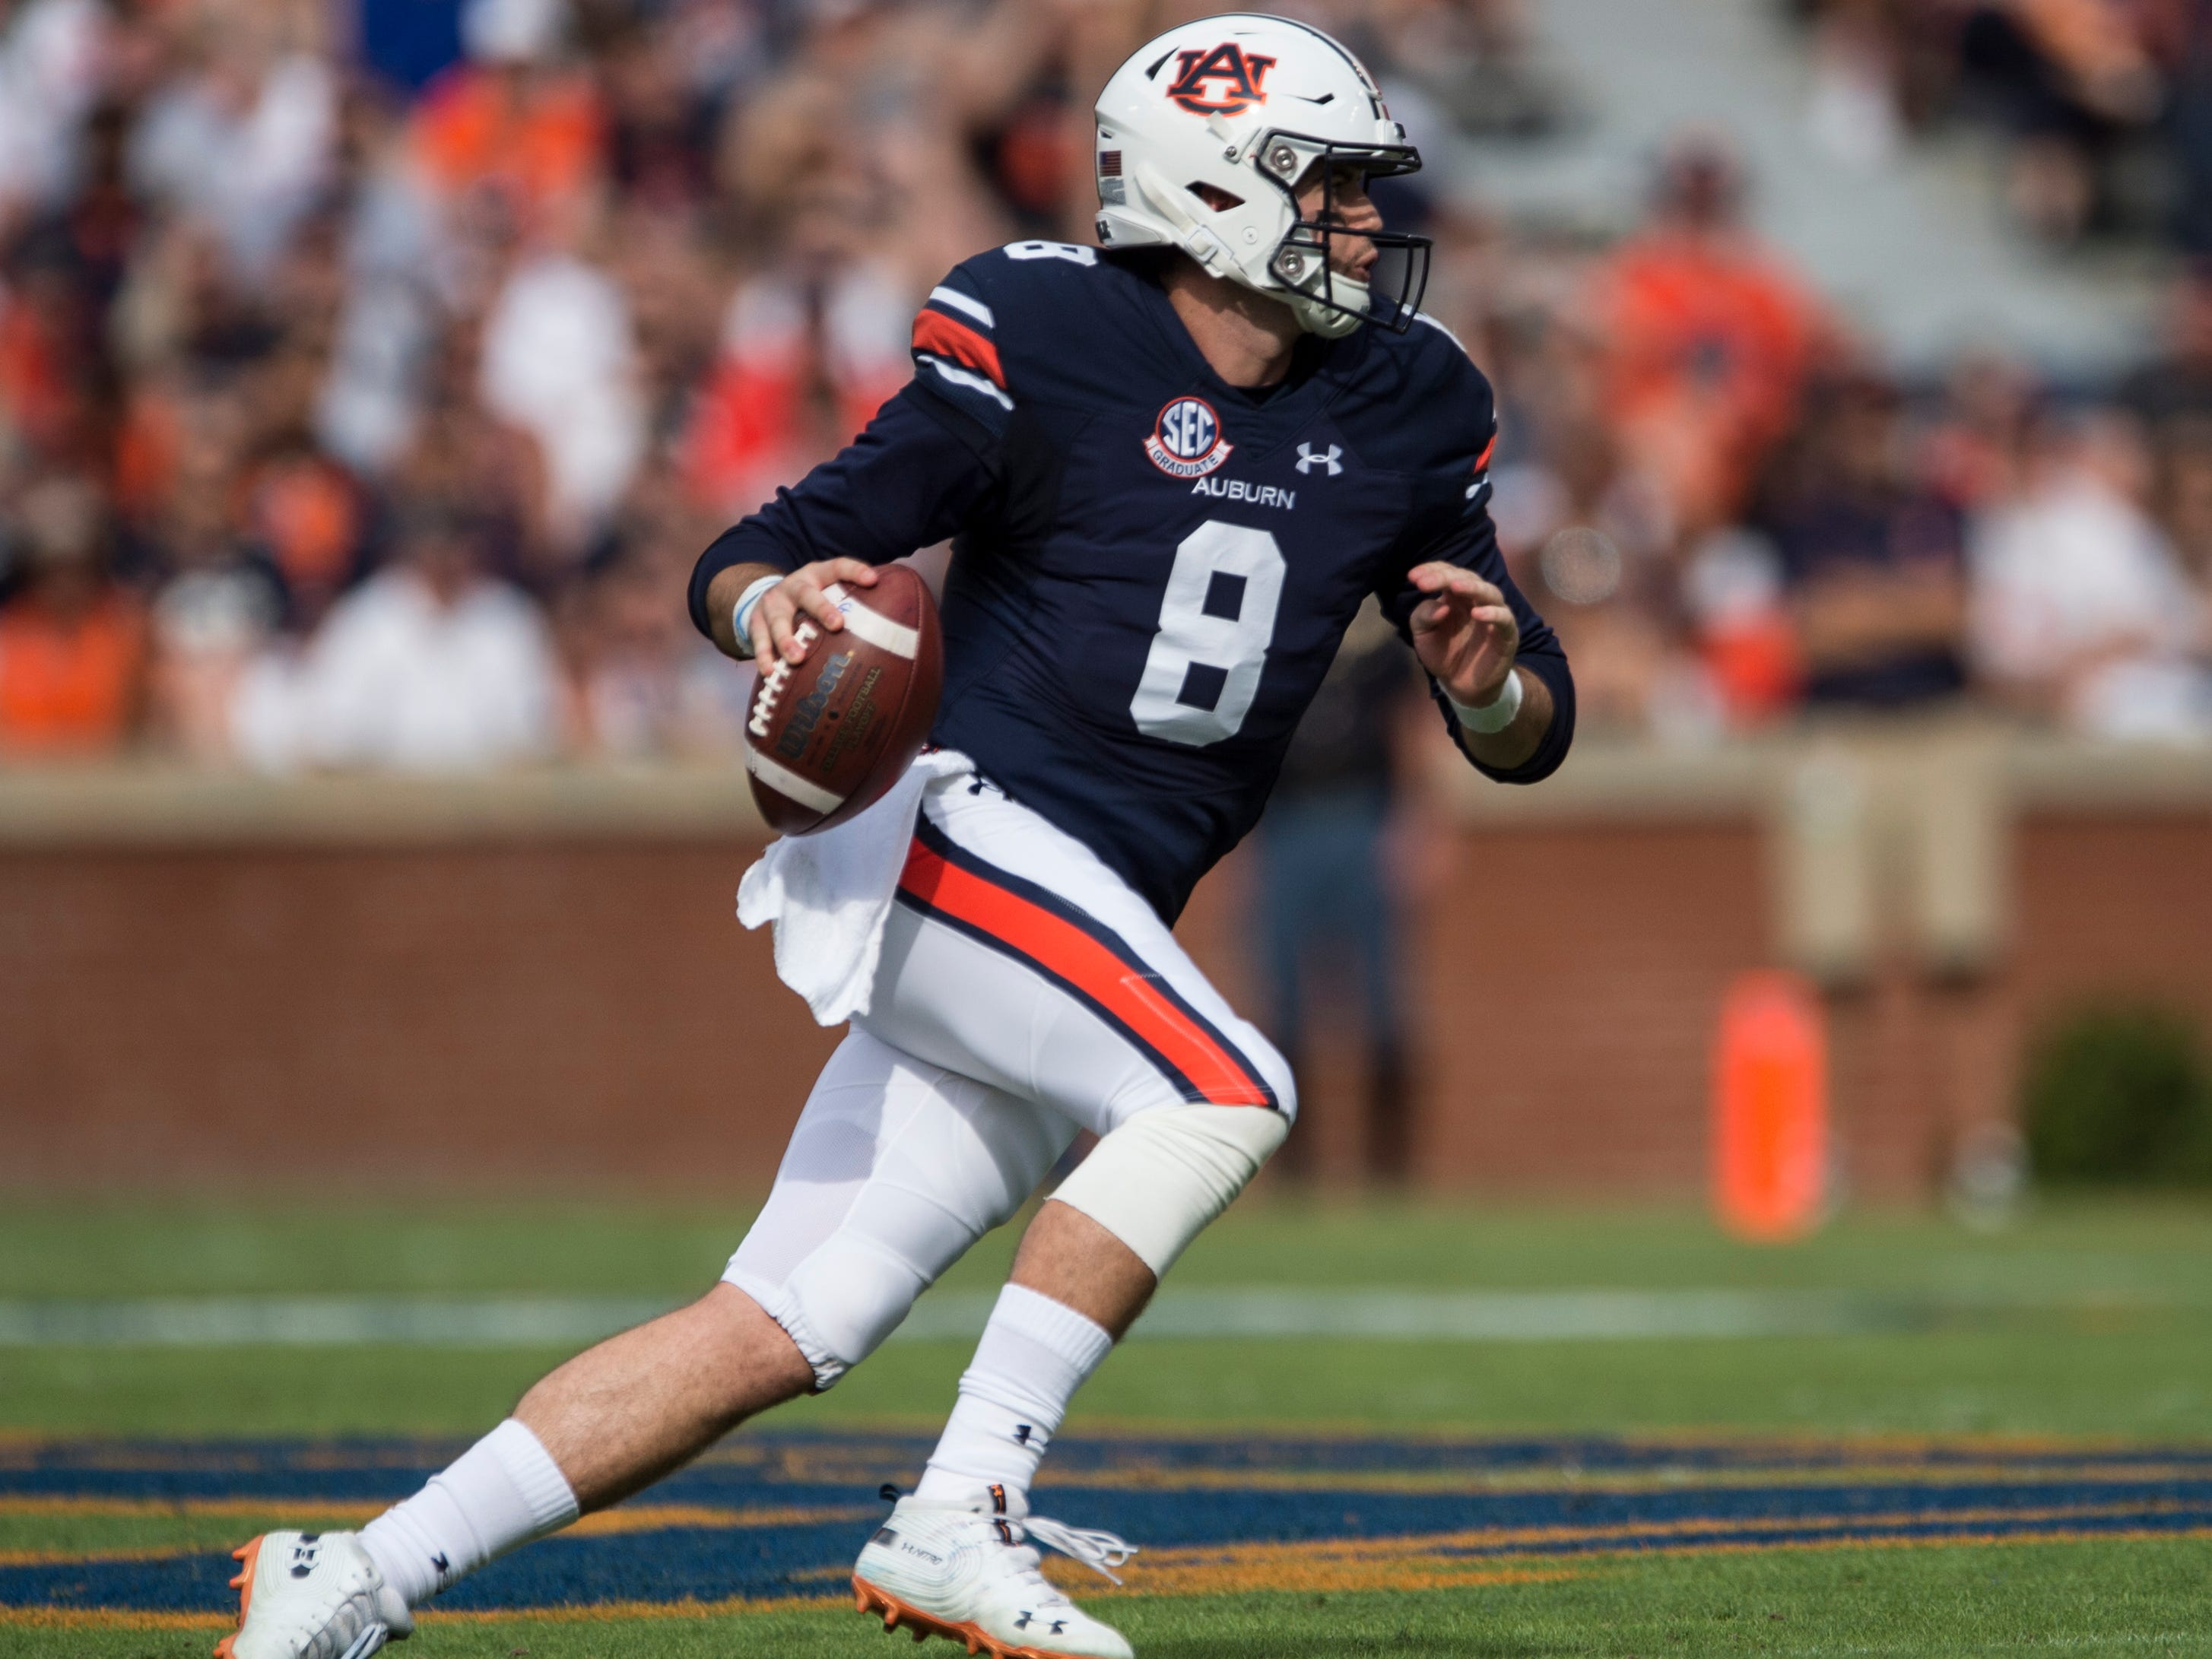 Auburn's Jarrett Stidham (8) scrambles out of the pocket against Southern Miss at Jordan-Hare Stadium in Auburn, Ala., on Saturday, Sept. 29, 2018. Auburn leads Southern Miss 14-3, the game went into a weather delay with 4:27 left in the second quarter.